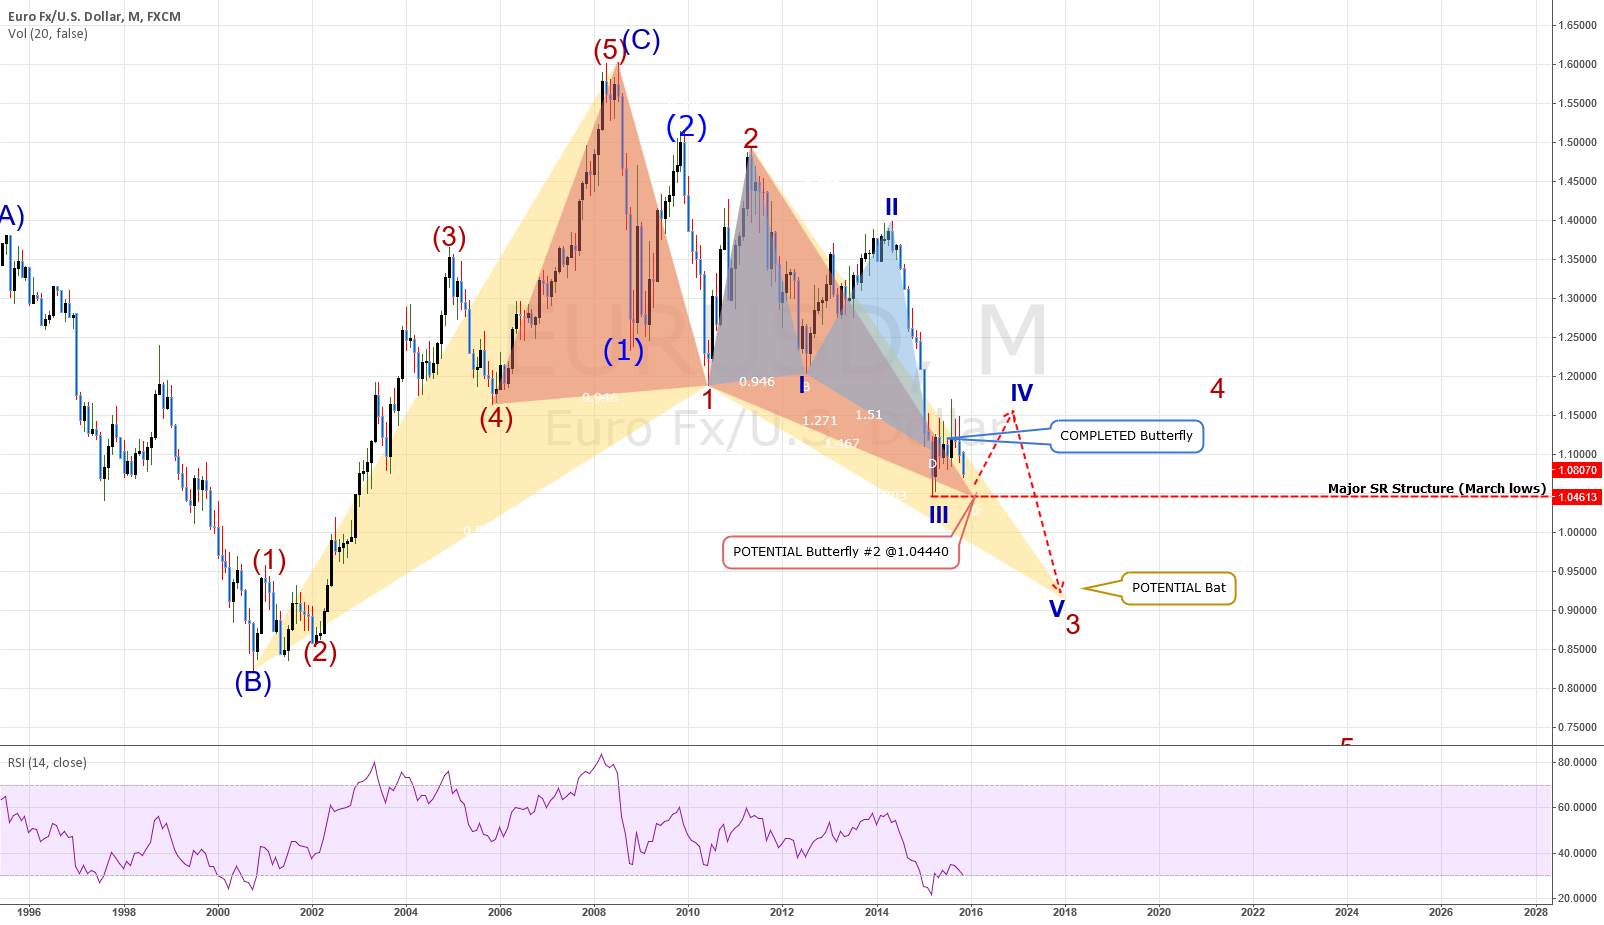 EURUSD: MONTHLY CHART - MUCH More To Fall!